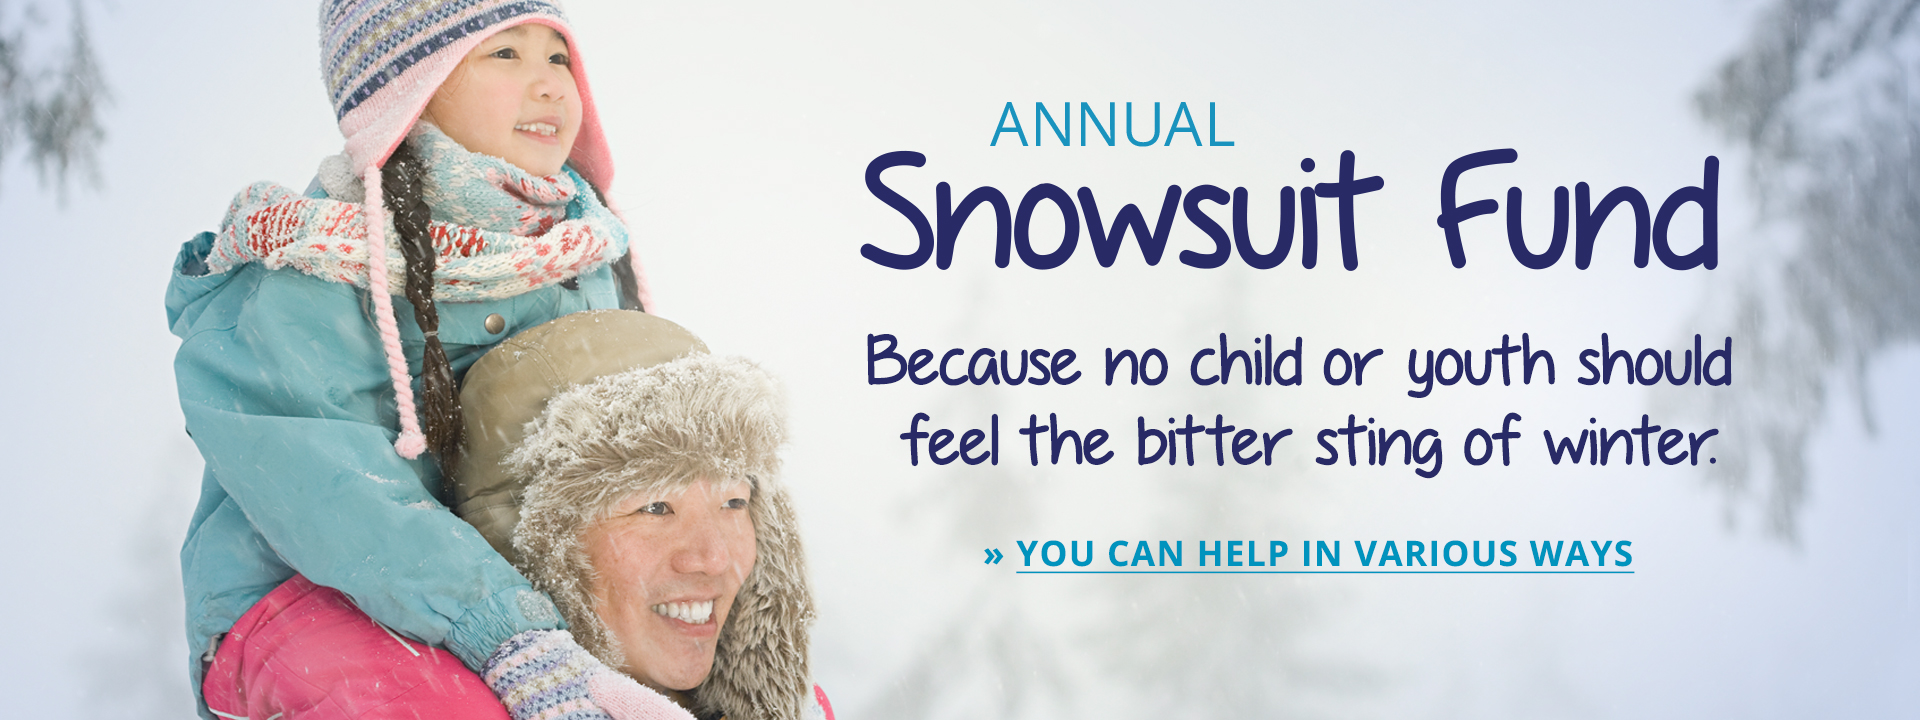 Annual Snowsuit Fund. Because no child or youth should feel the bitter sting of winter. You can help in various ways.